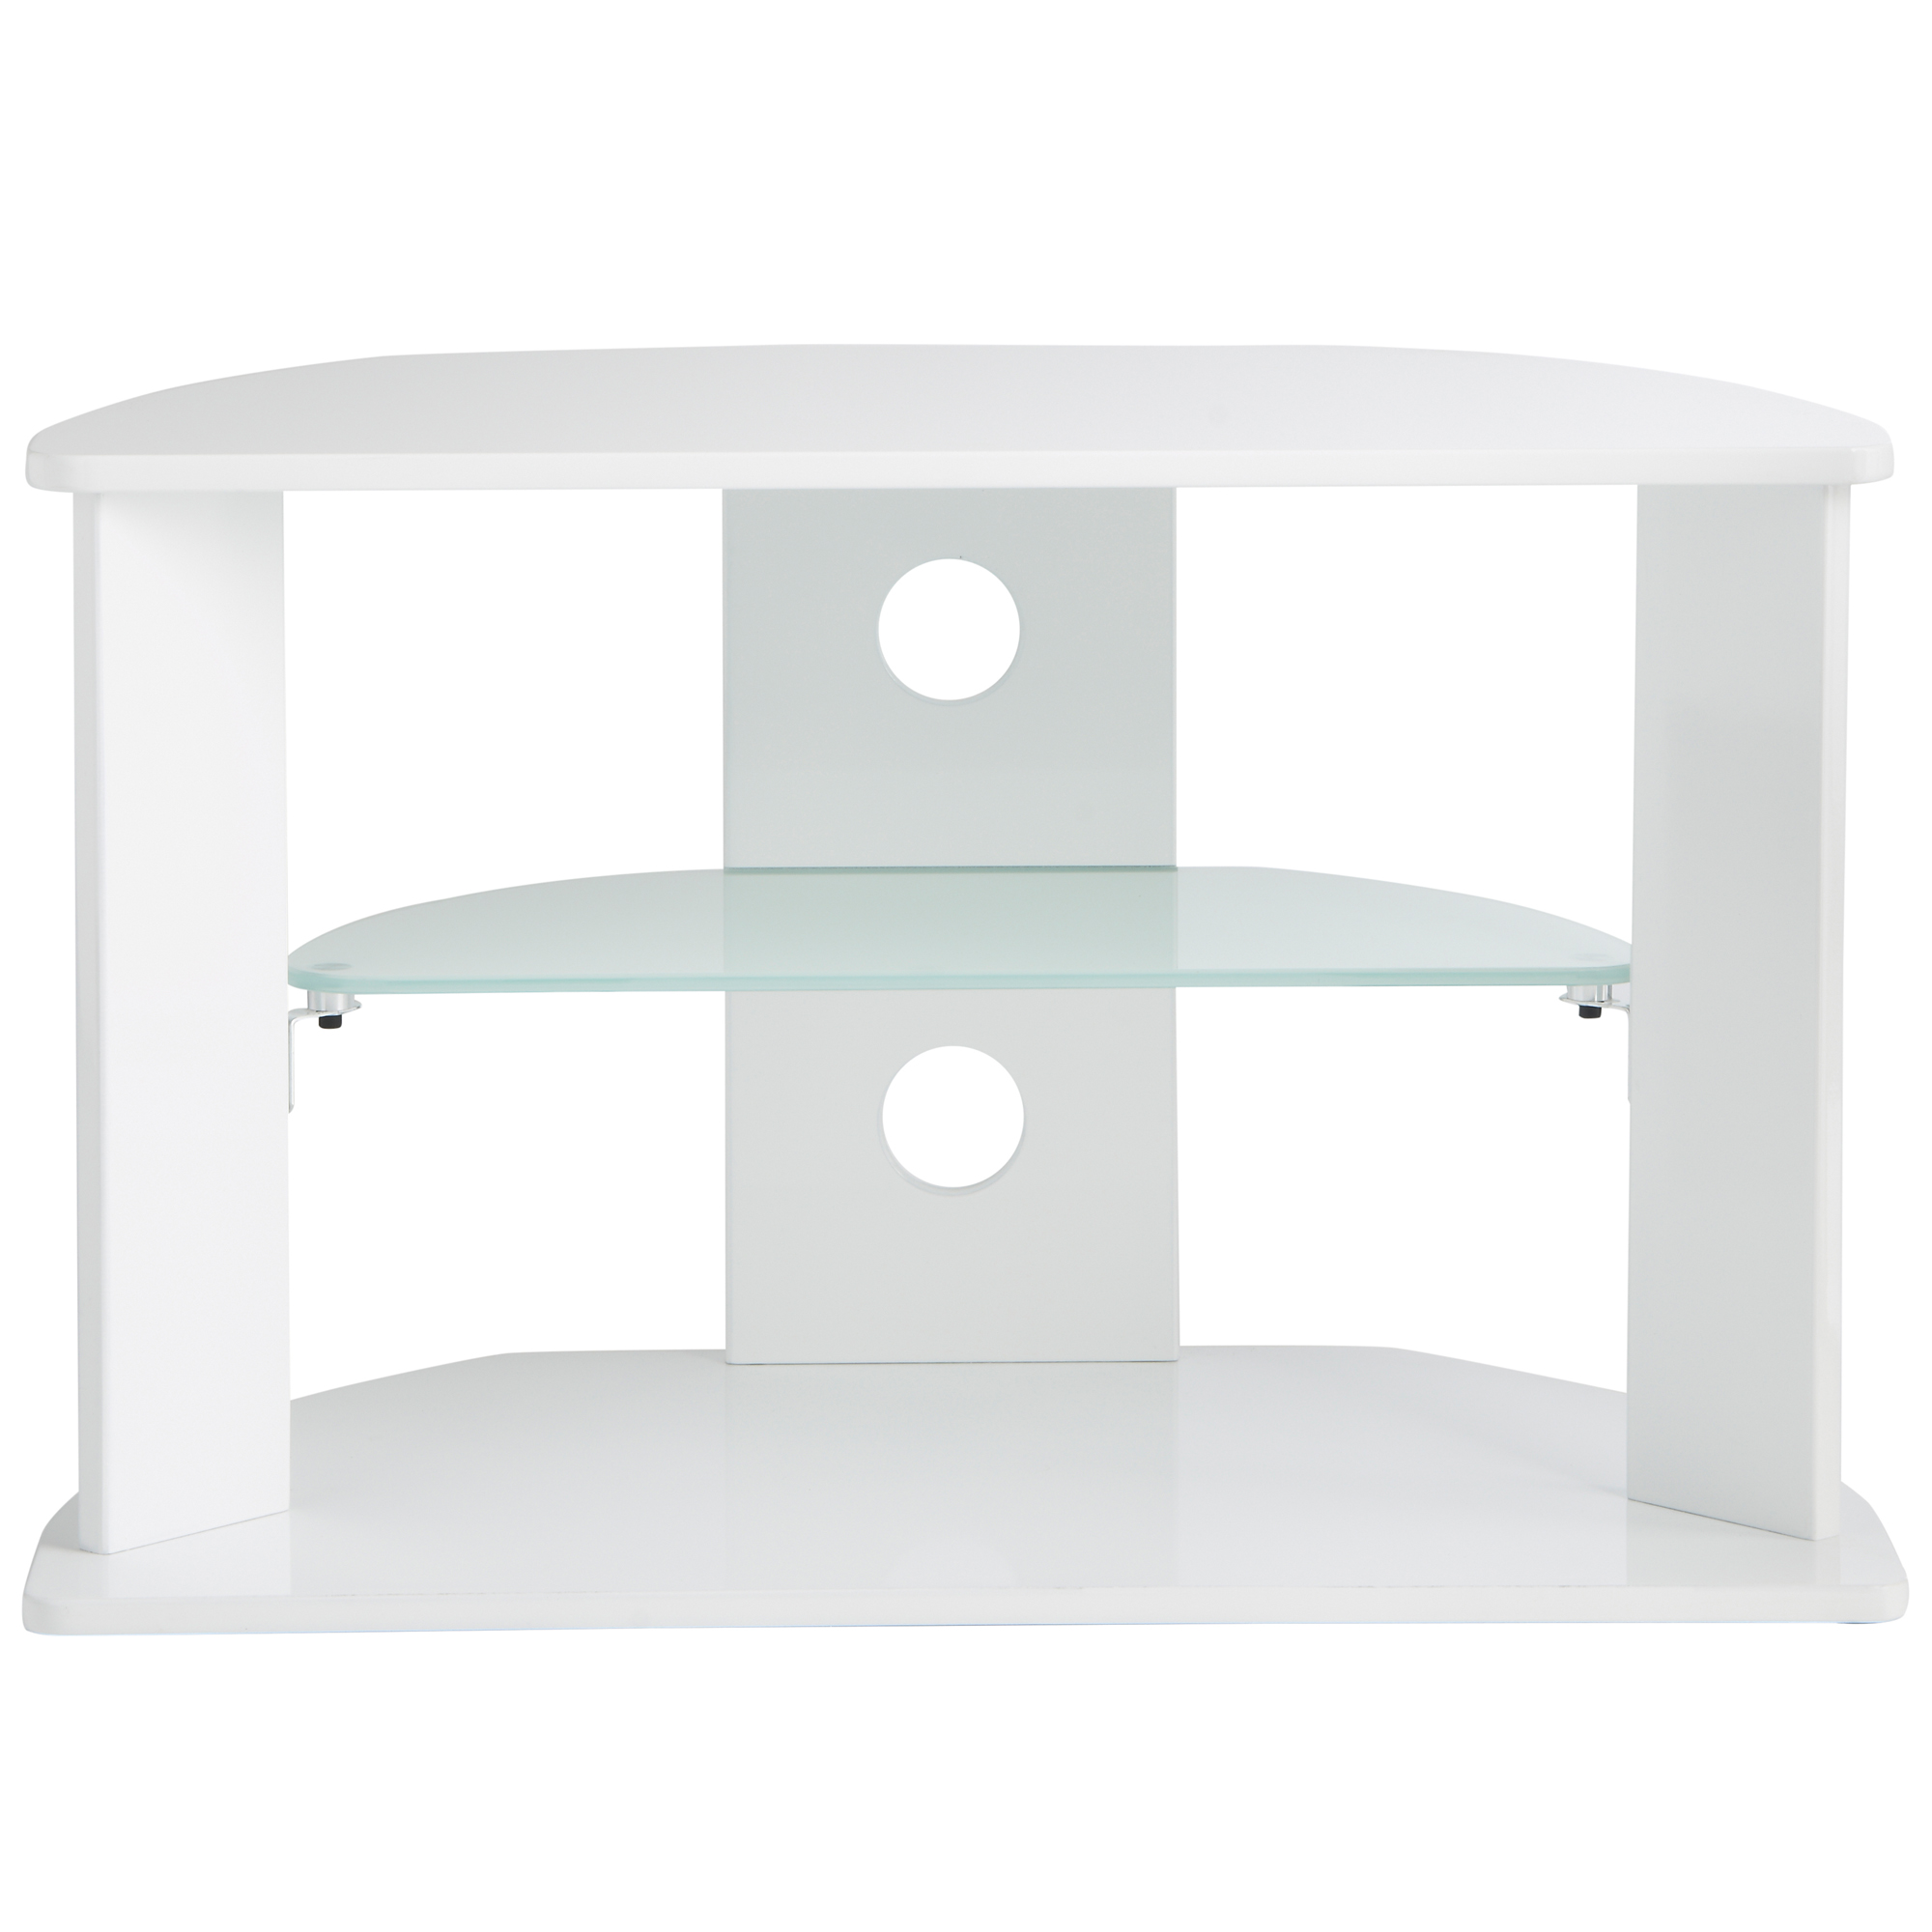 Sentinel Vonhaus High Gloss Mdf White Tv Stand With 3 Shelves